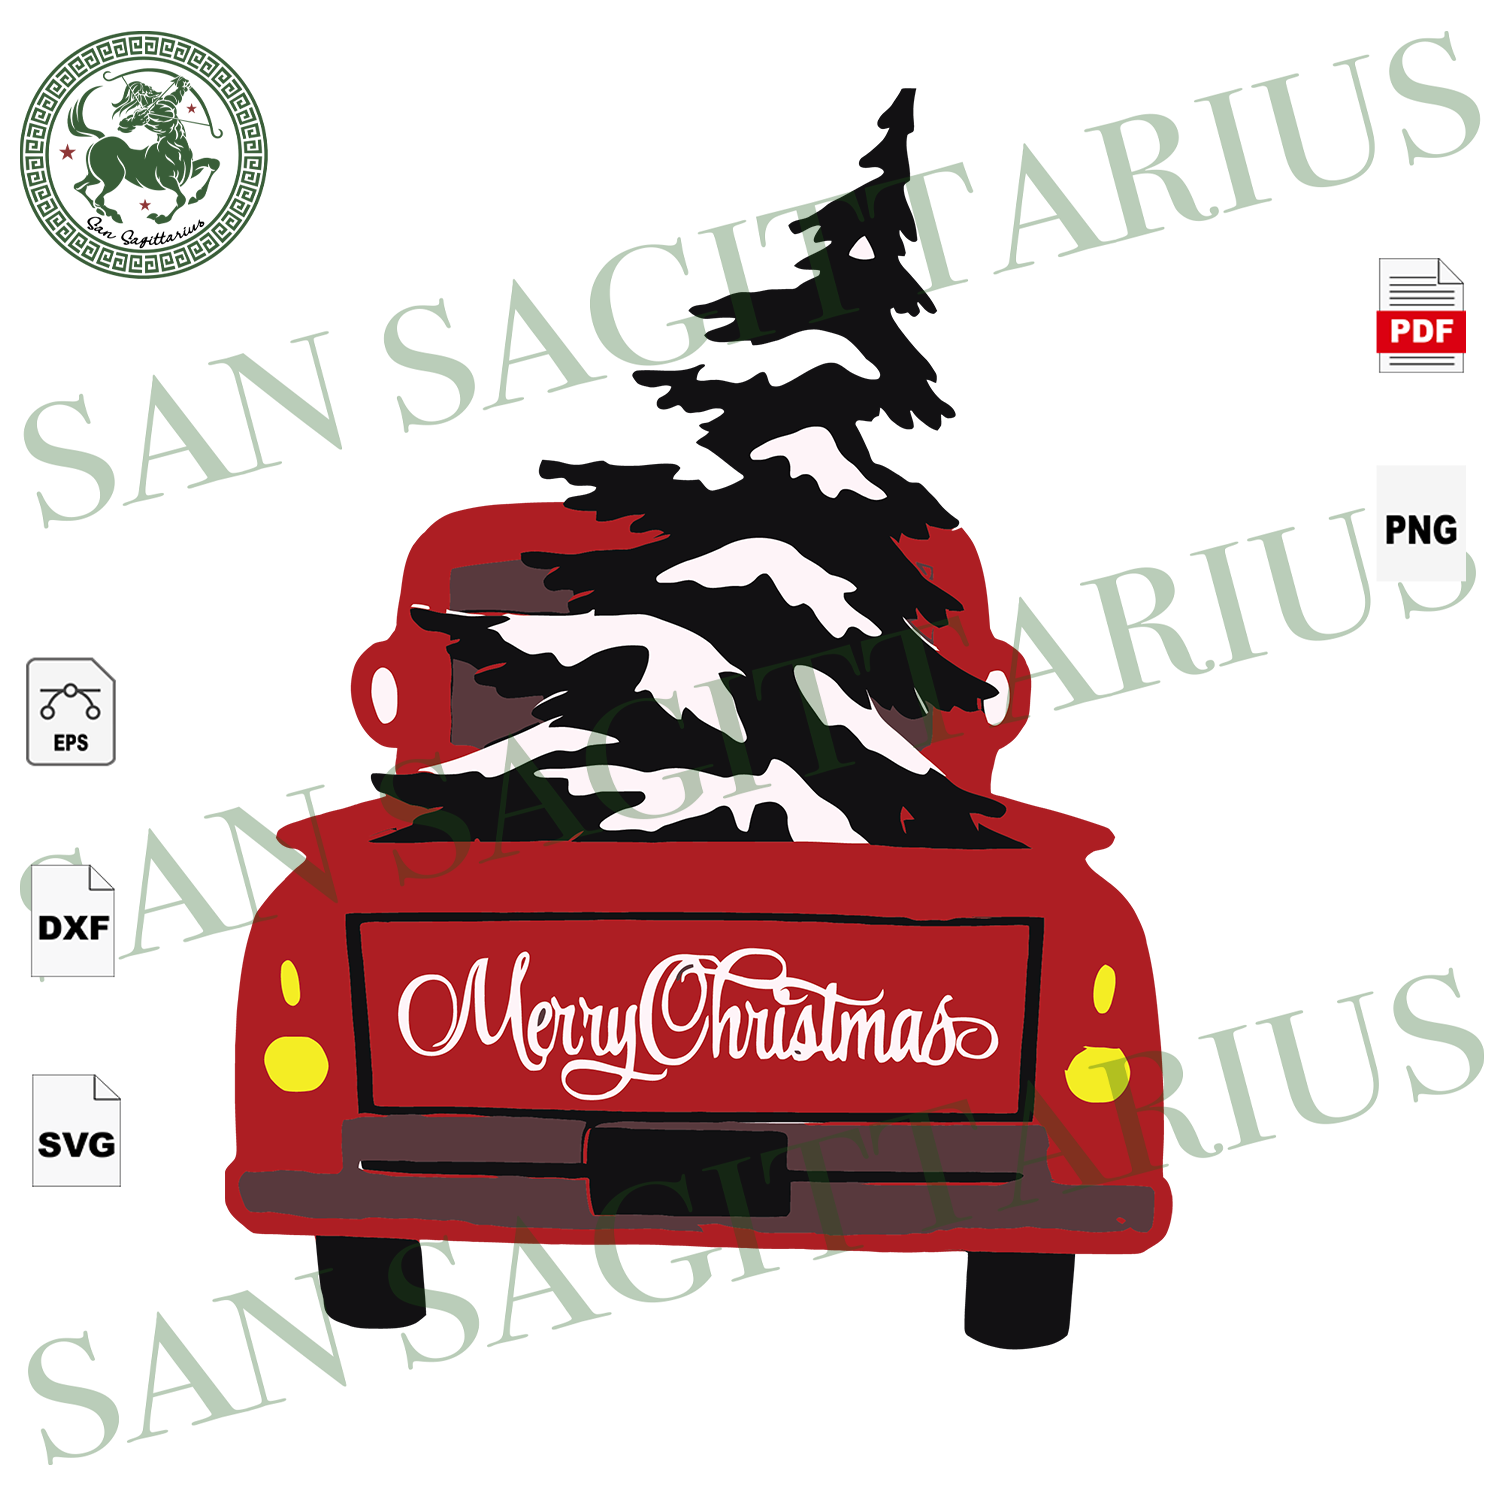 Merry Christmas, Car Christmas, Christmas Svg, Car SVG, Car Christmas Shirts, Car Christmas Gifts, Christmas Gifts, Merry Christmas, Christmas Holiday, Christmas Party, Funny Christmas, Chris